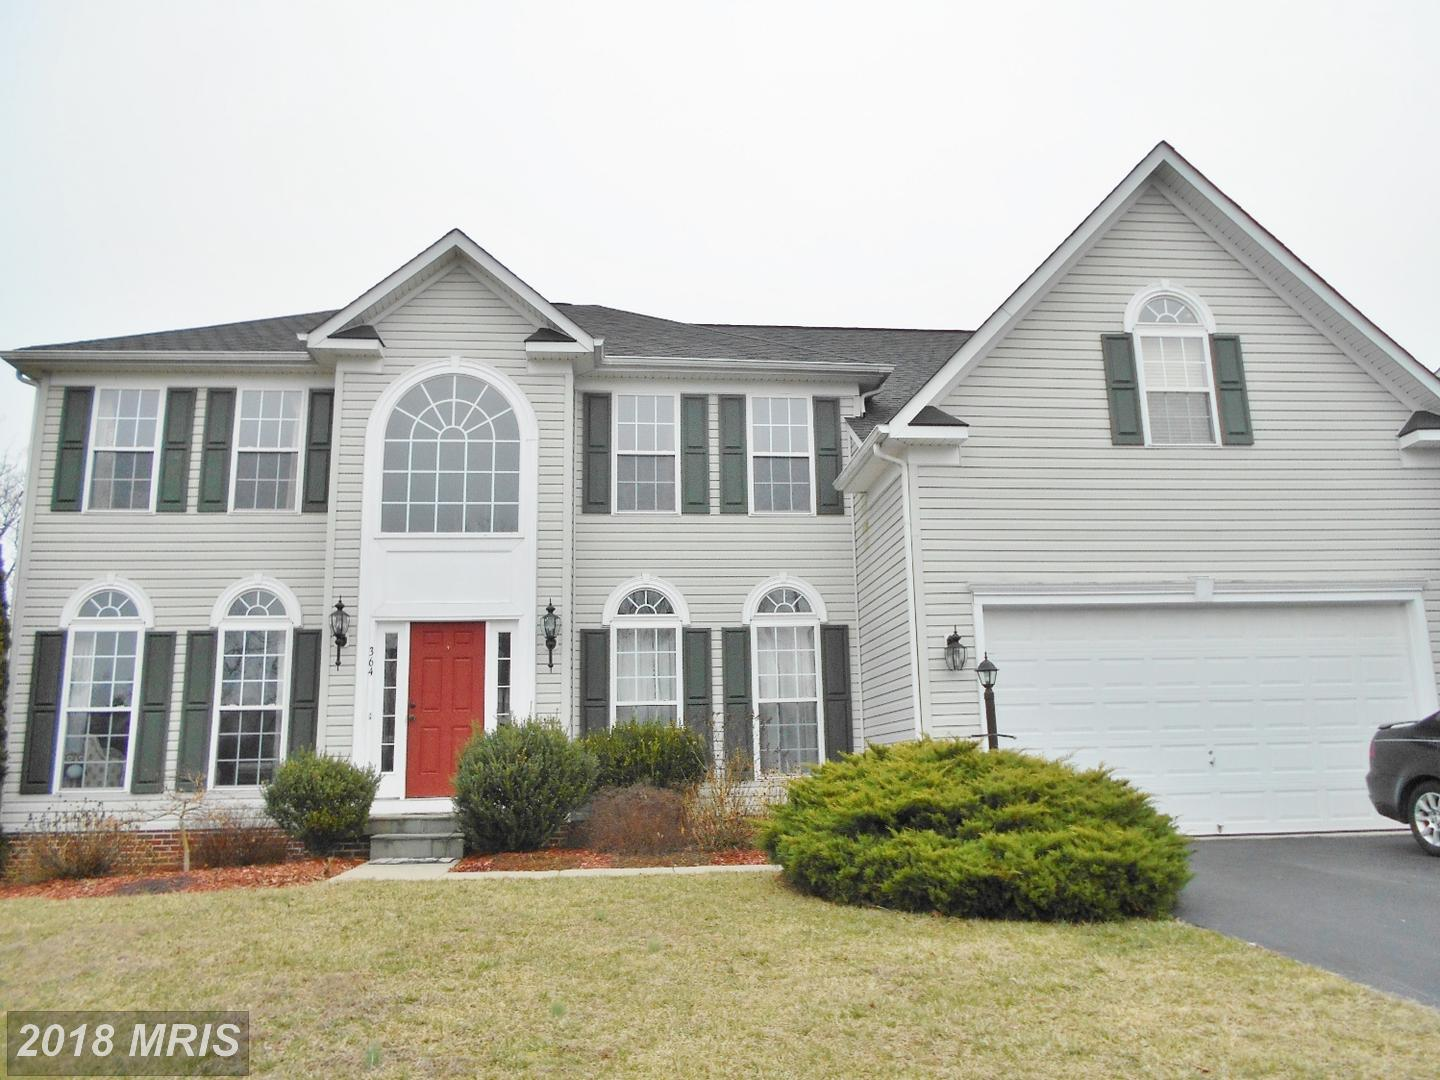 4 bedroom Homes for sale in charles town, WV | charles town MLS ...